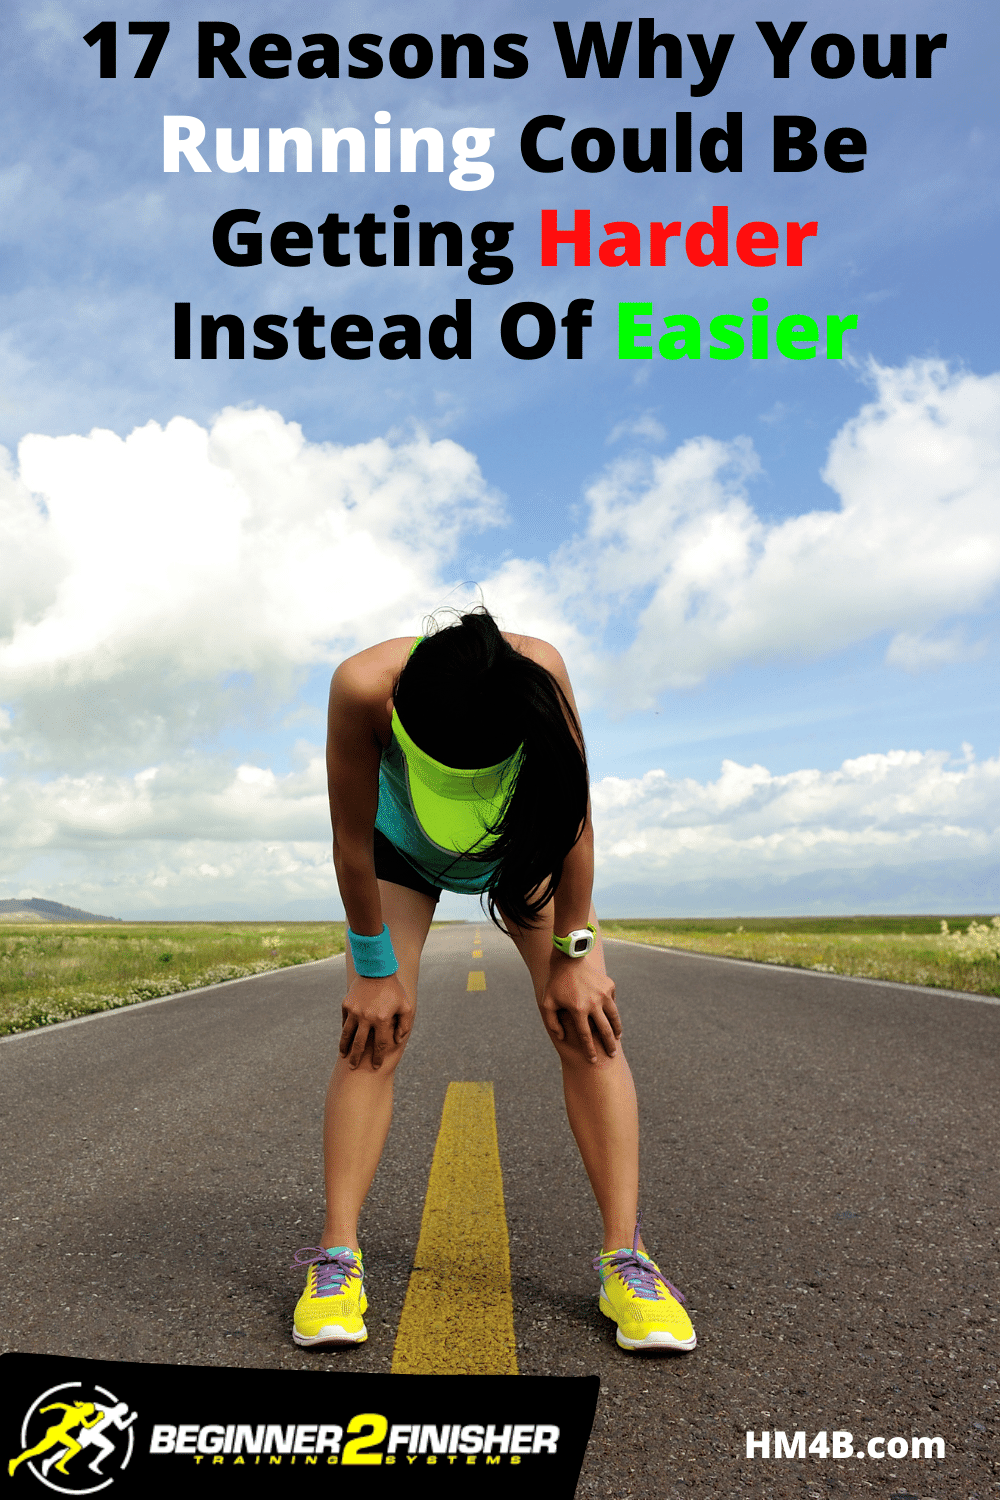 17 Reasons Why Running Could Be Getting Harder Instead Of Easier?